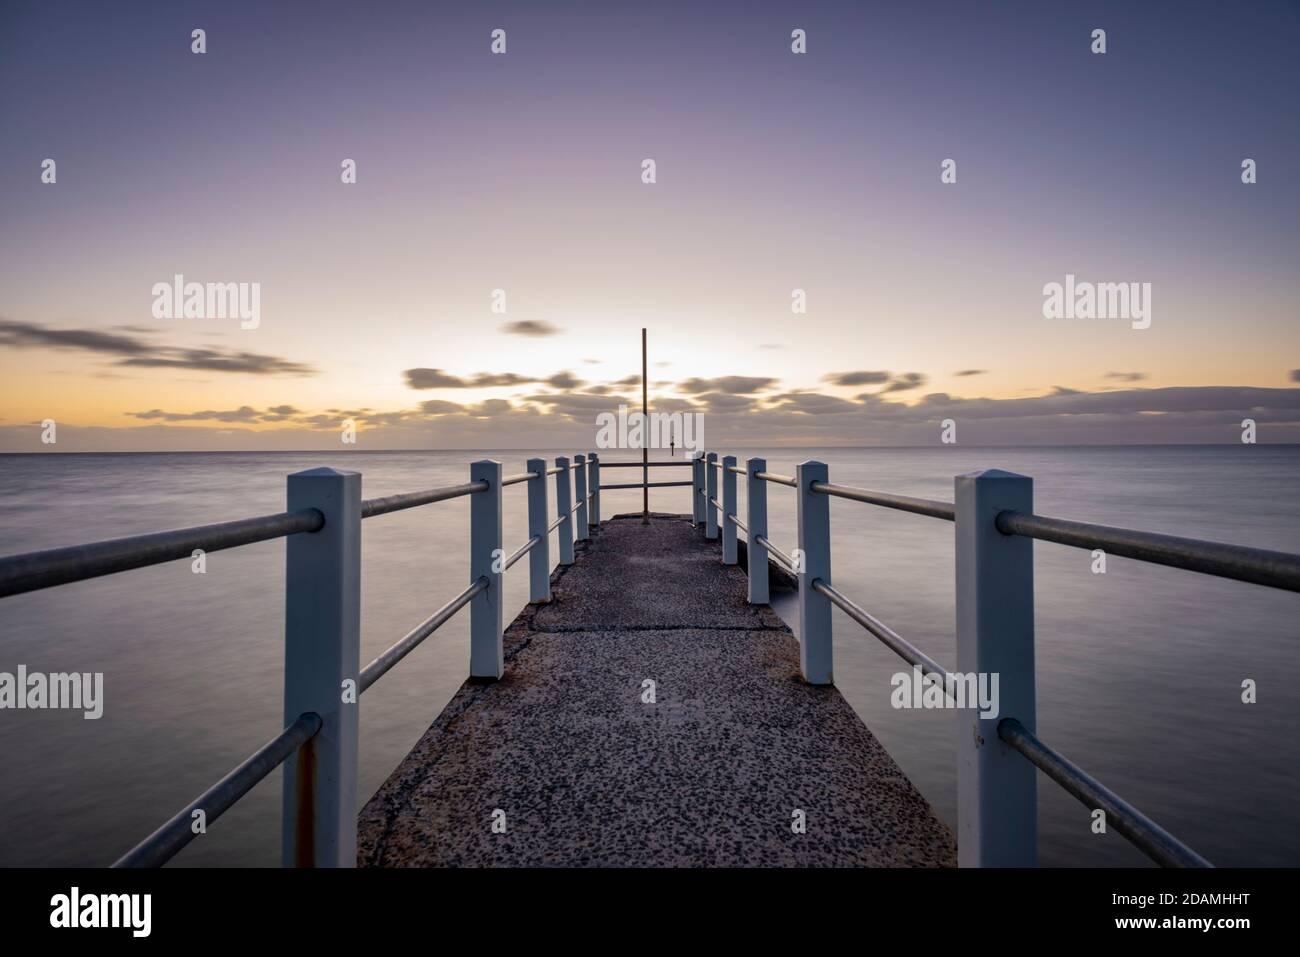 Looking out over a pier against the ocean, a purple dusk horizon sky Stock Photo